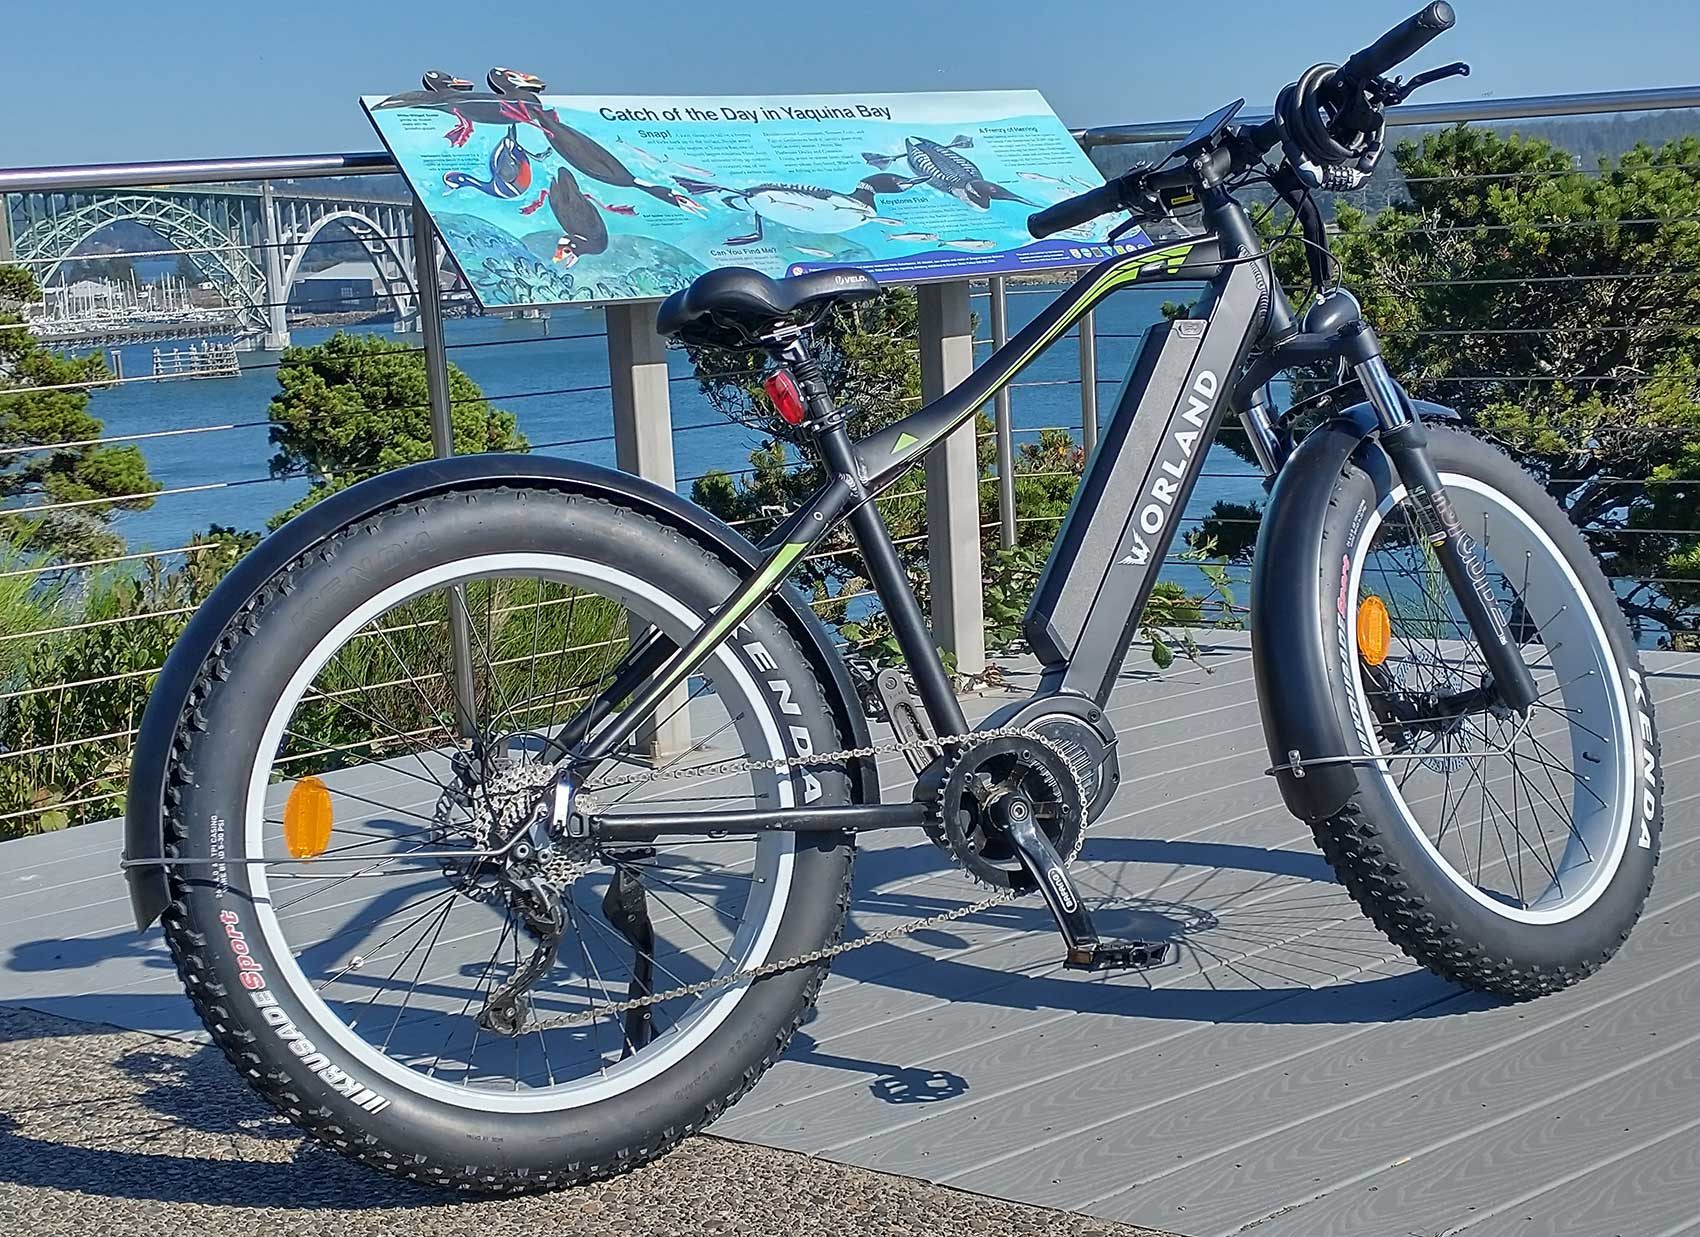 Stallion ebike from Worland is very high powered